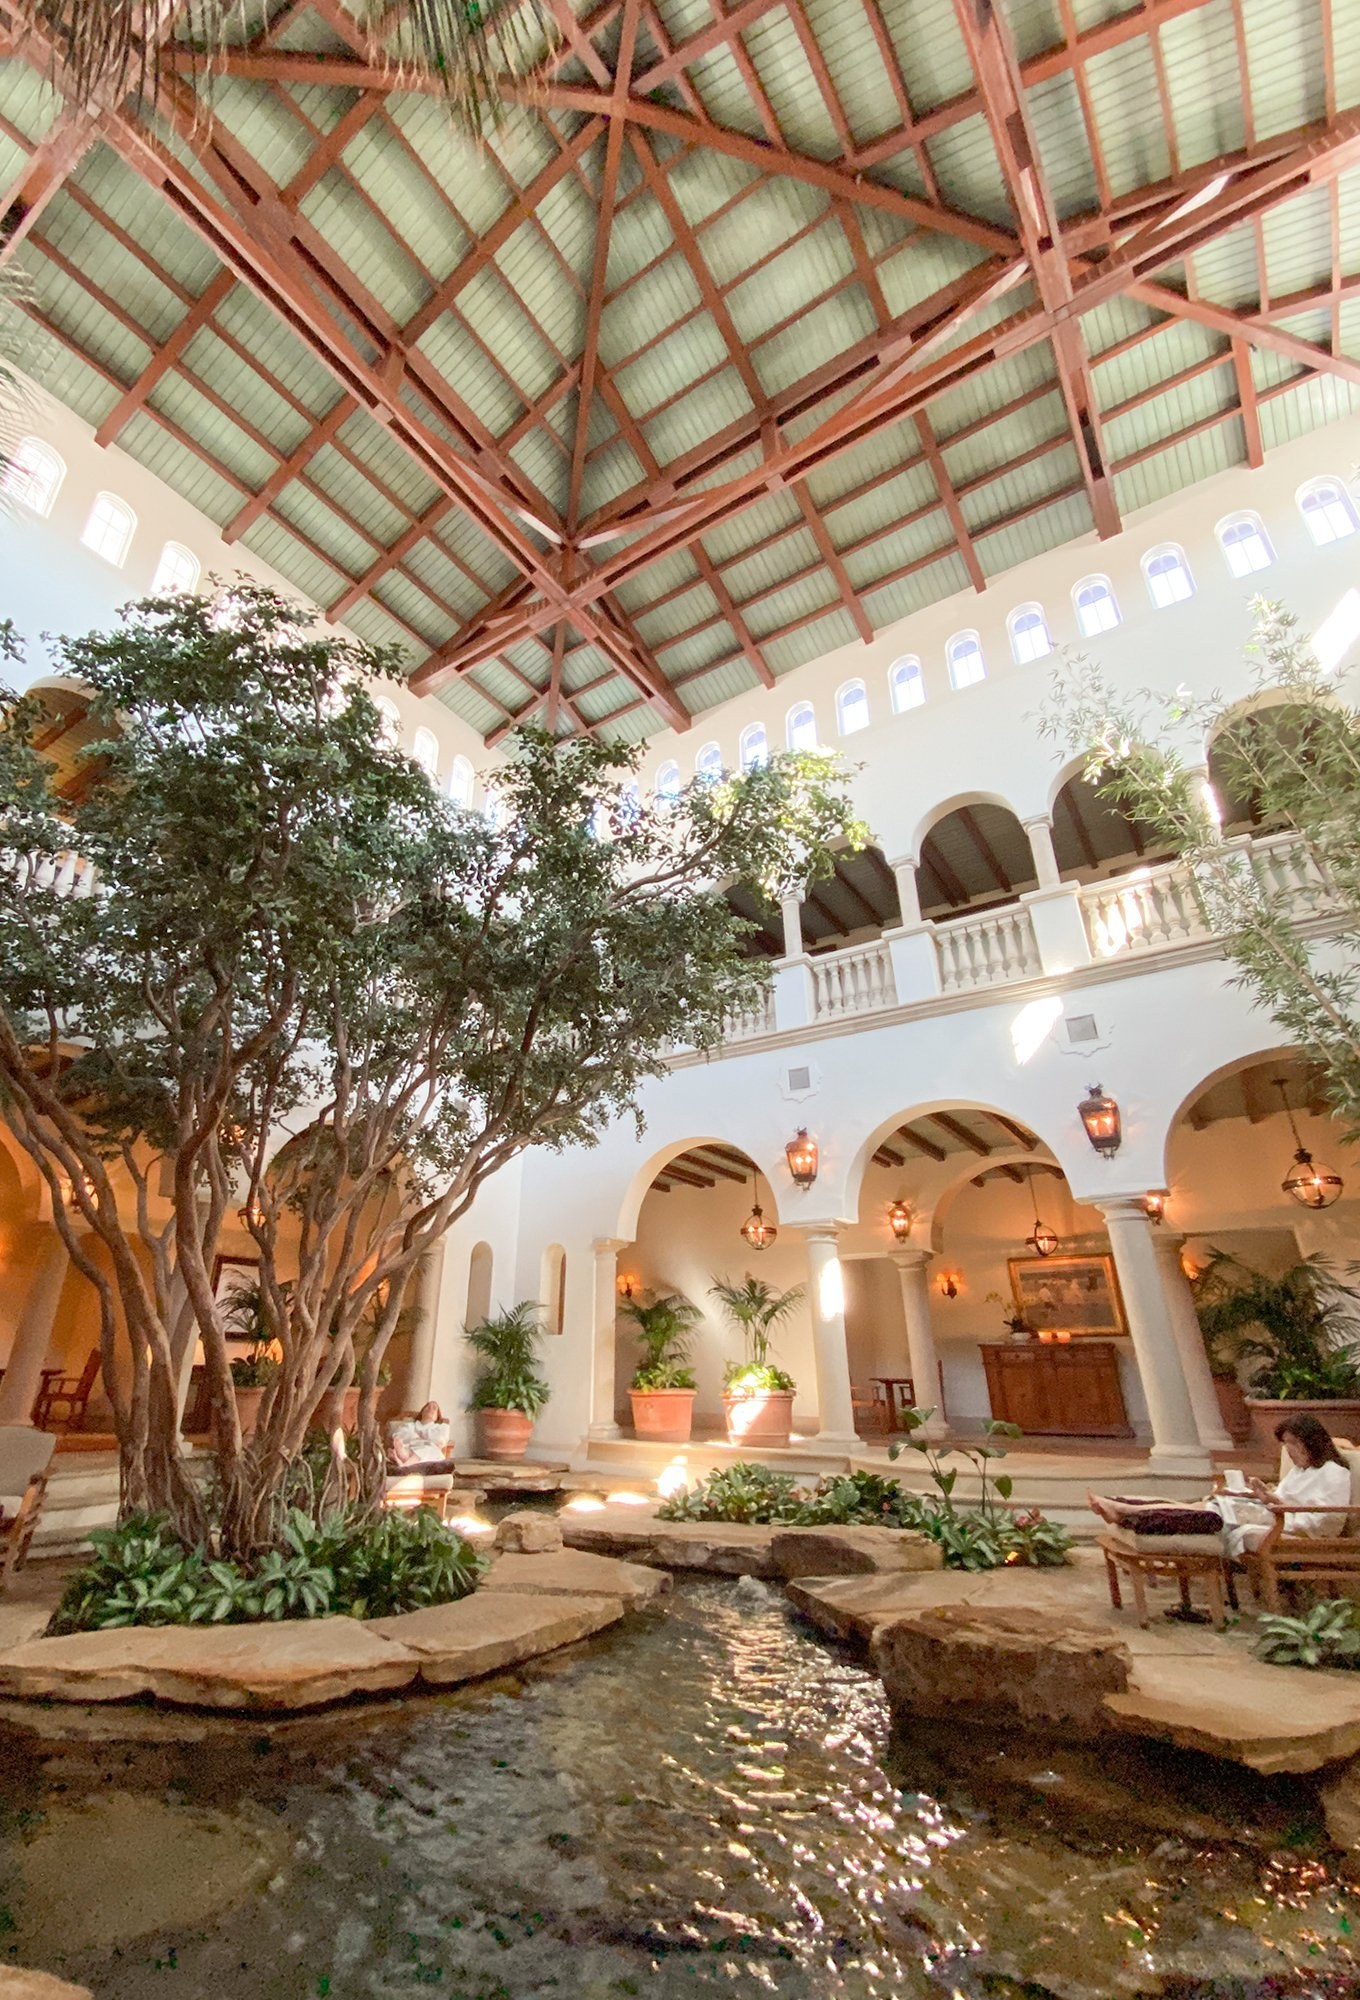 Inside the spa at The Cloister